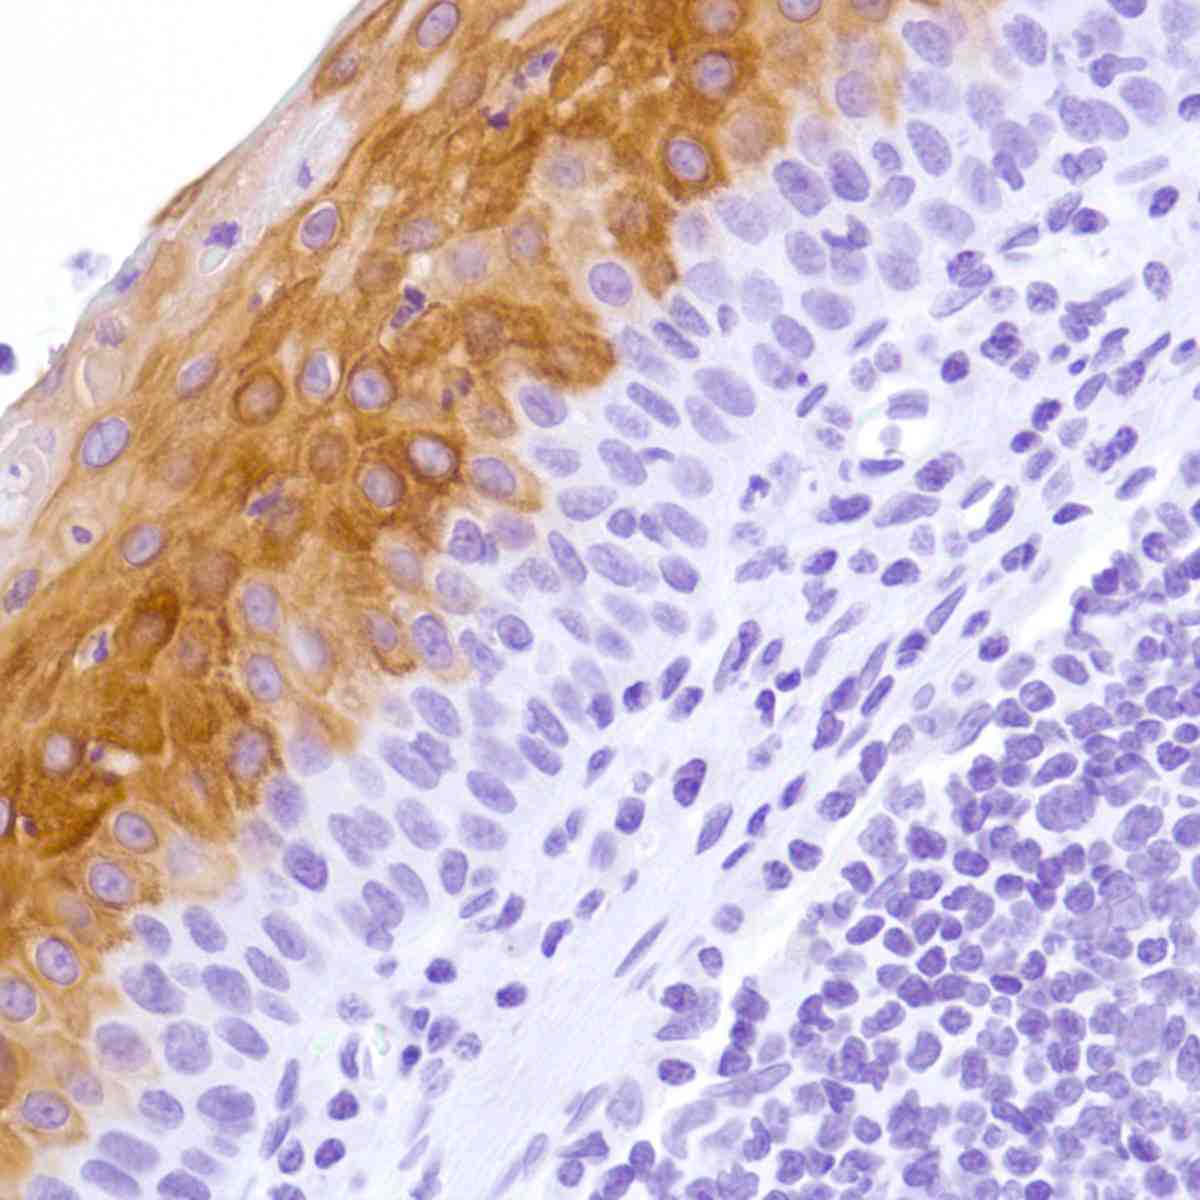 Human Tonsil stained with anti-keratin 4 antibody